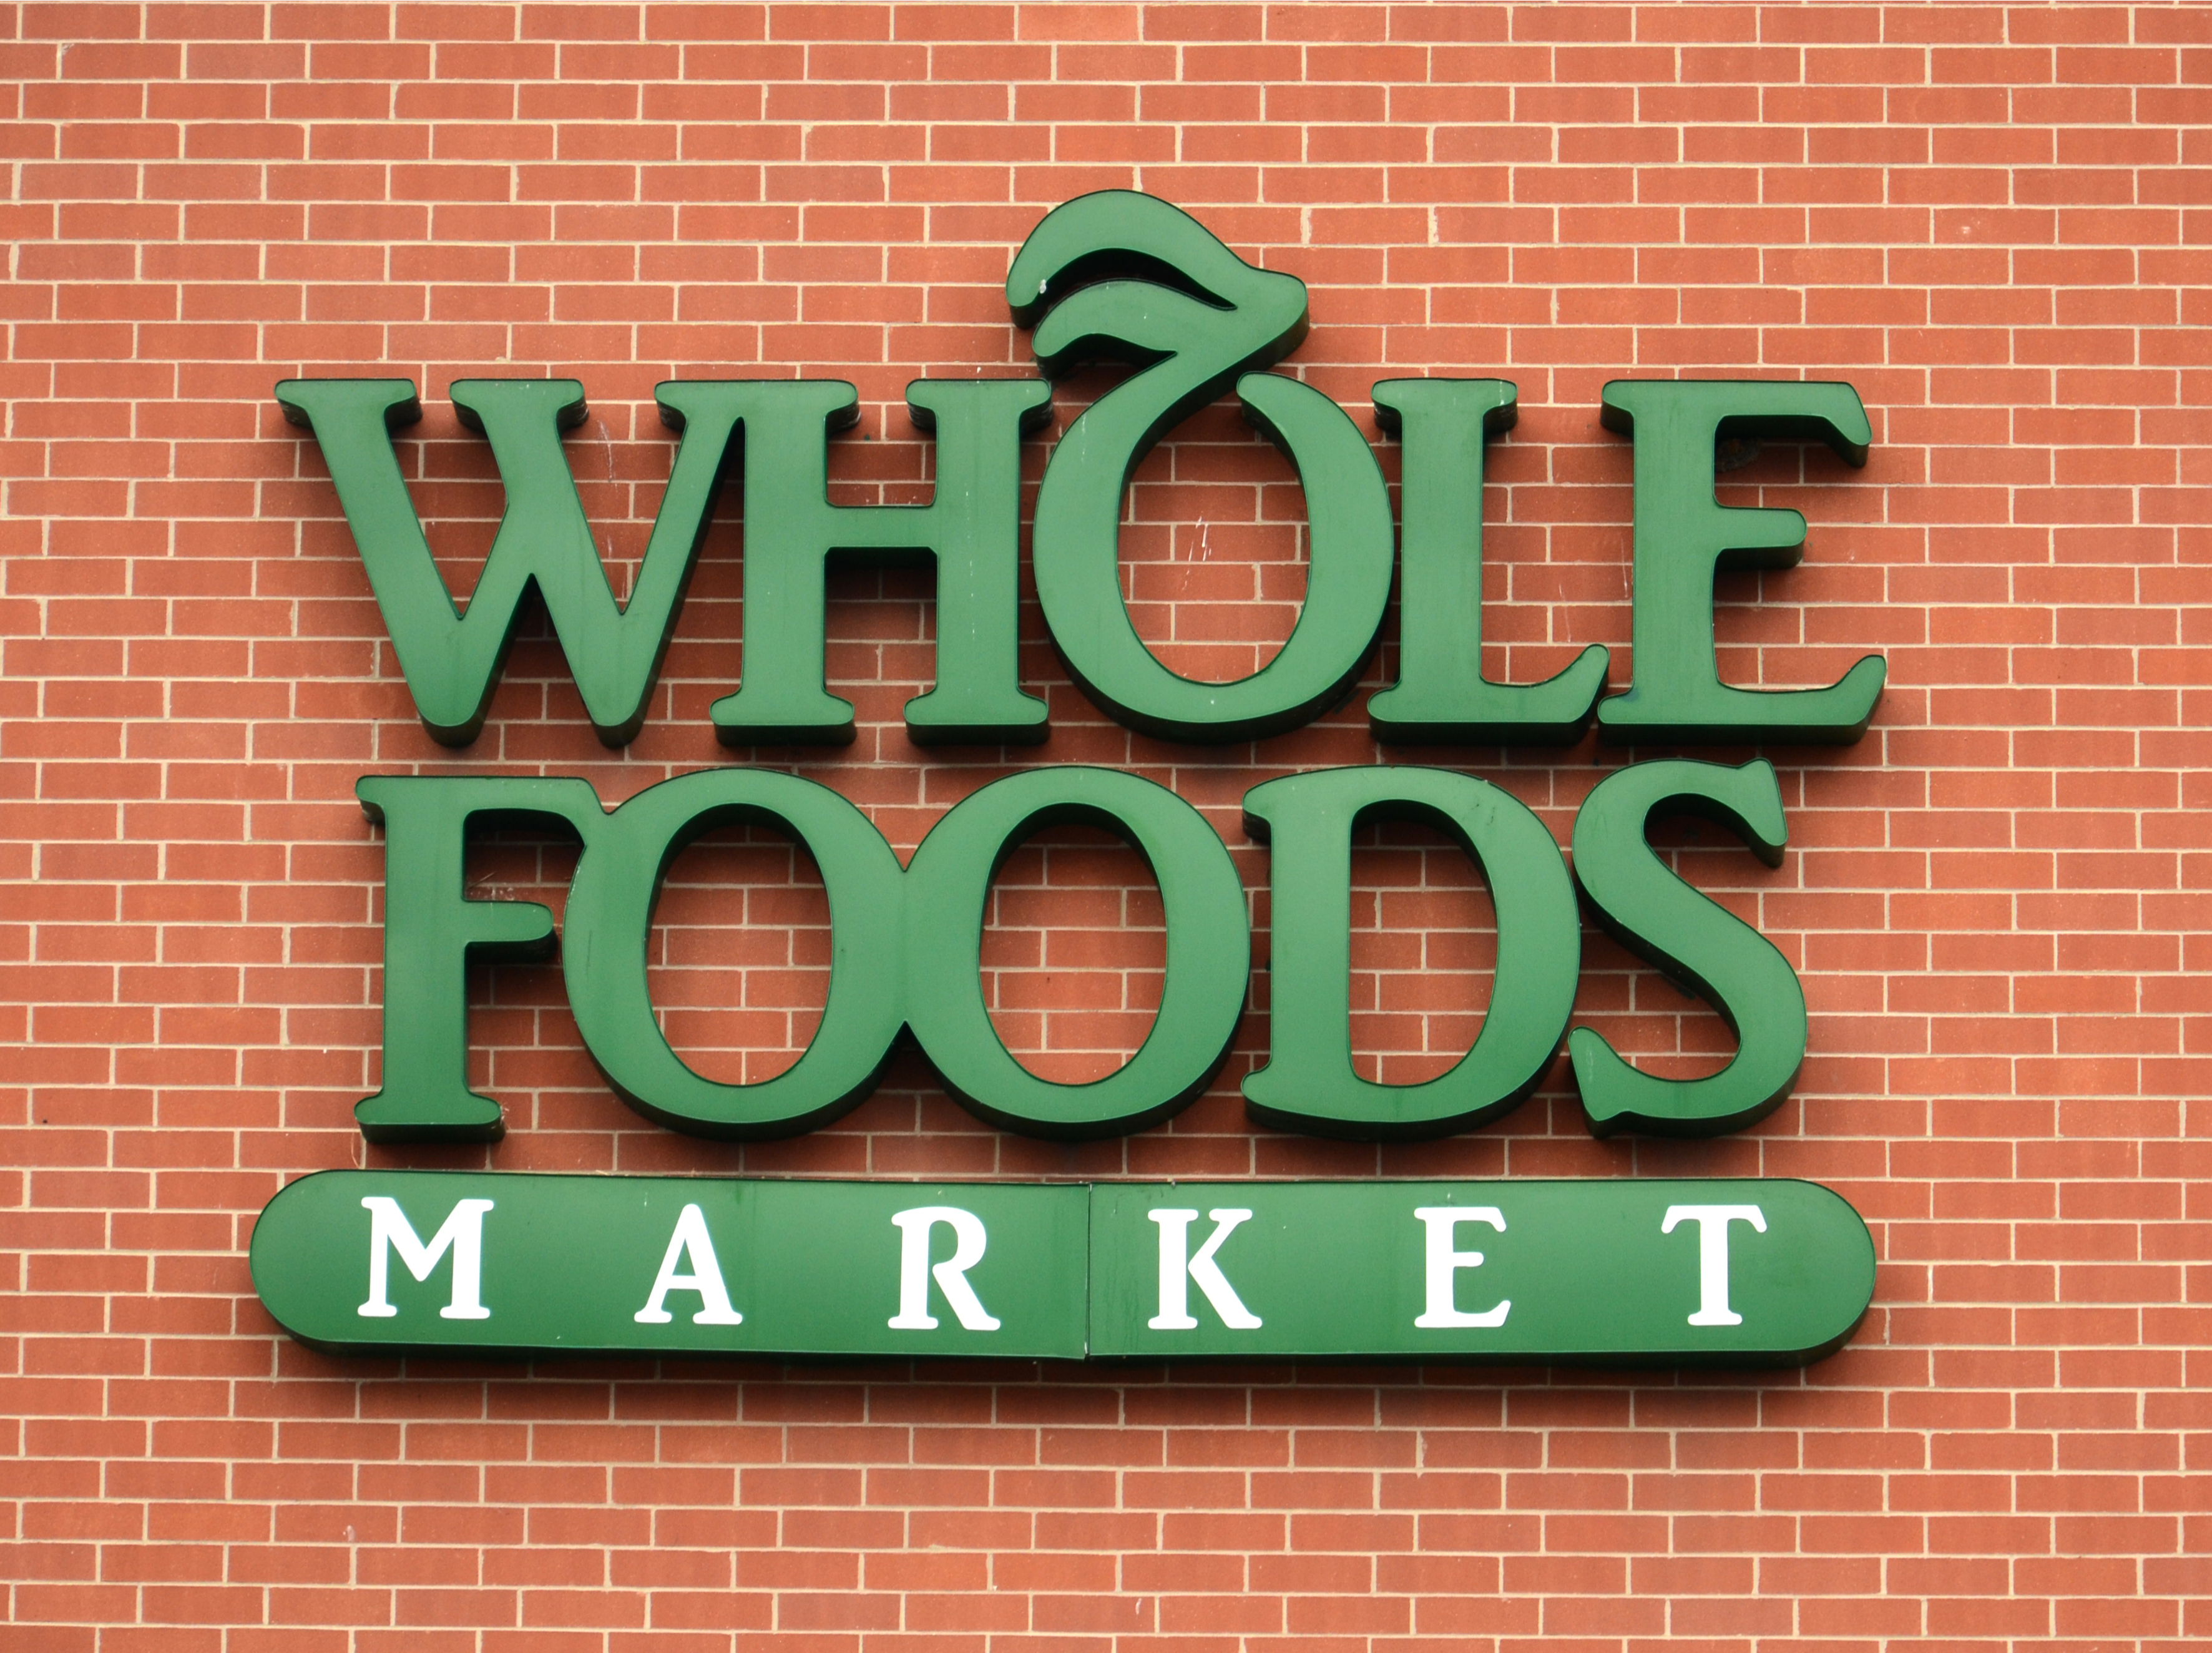 The Whole Foods Market logo shown against a brick background.